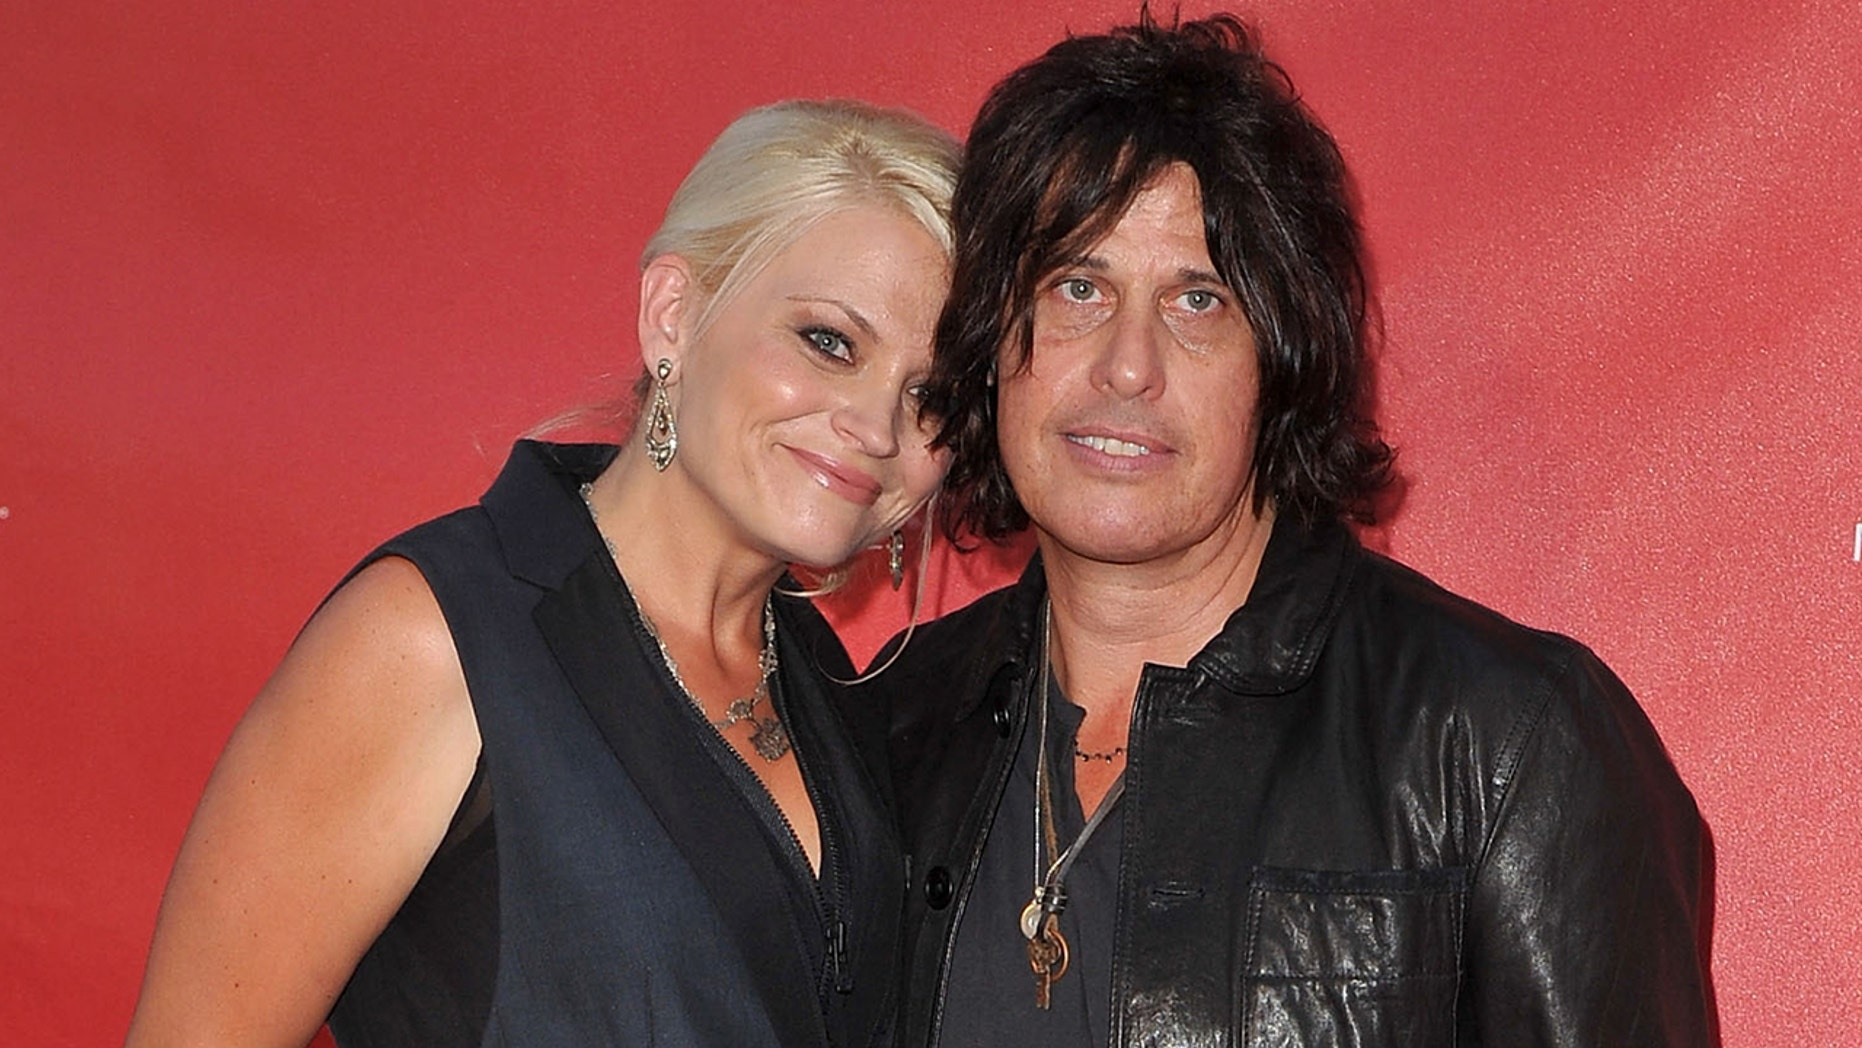 Jenn DeLeo claims husband Dean began abusing drugs and alcohol shortly after she gave birth to their daughter in 2012. The photo above shows the couple arriving at the 9th Annual MusiCares MAP Fund Benefit Concert on May 30, 2013 in Los Angeles.